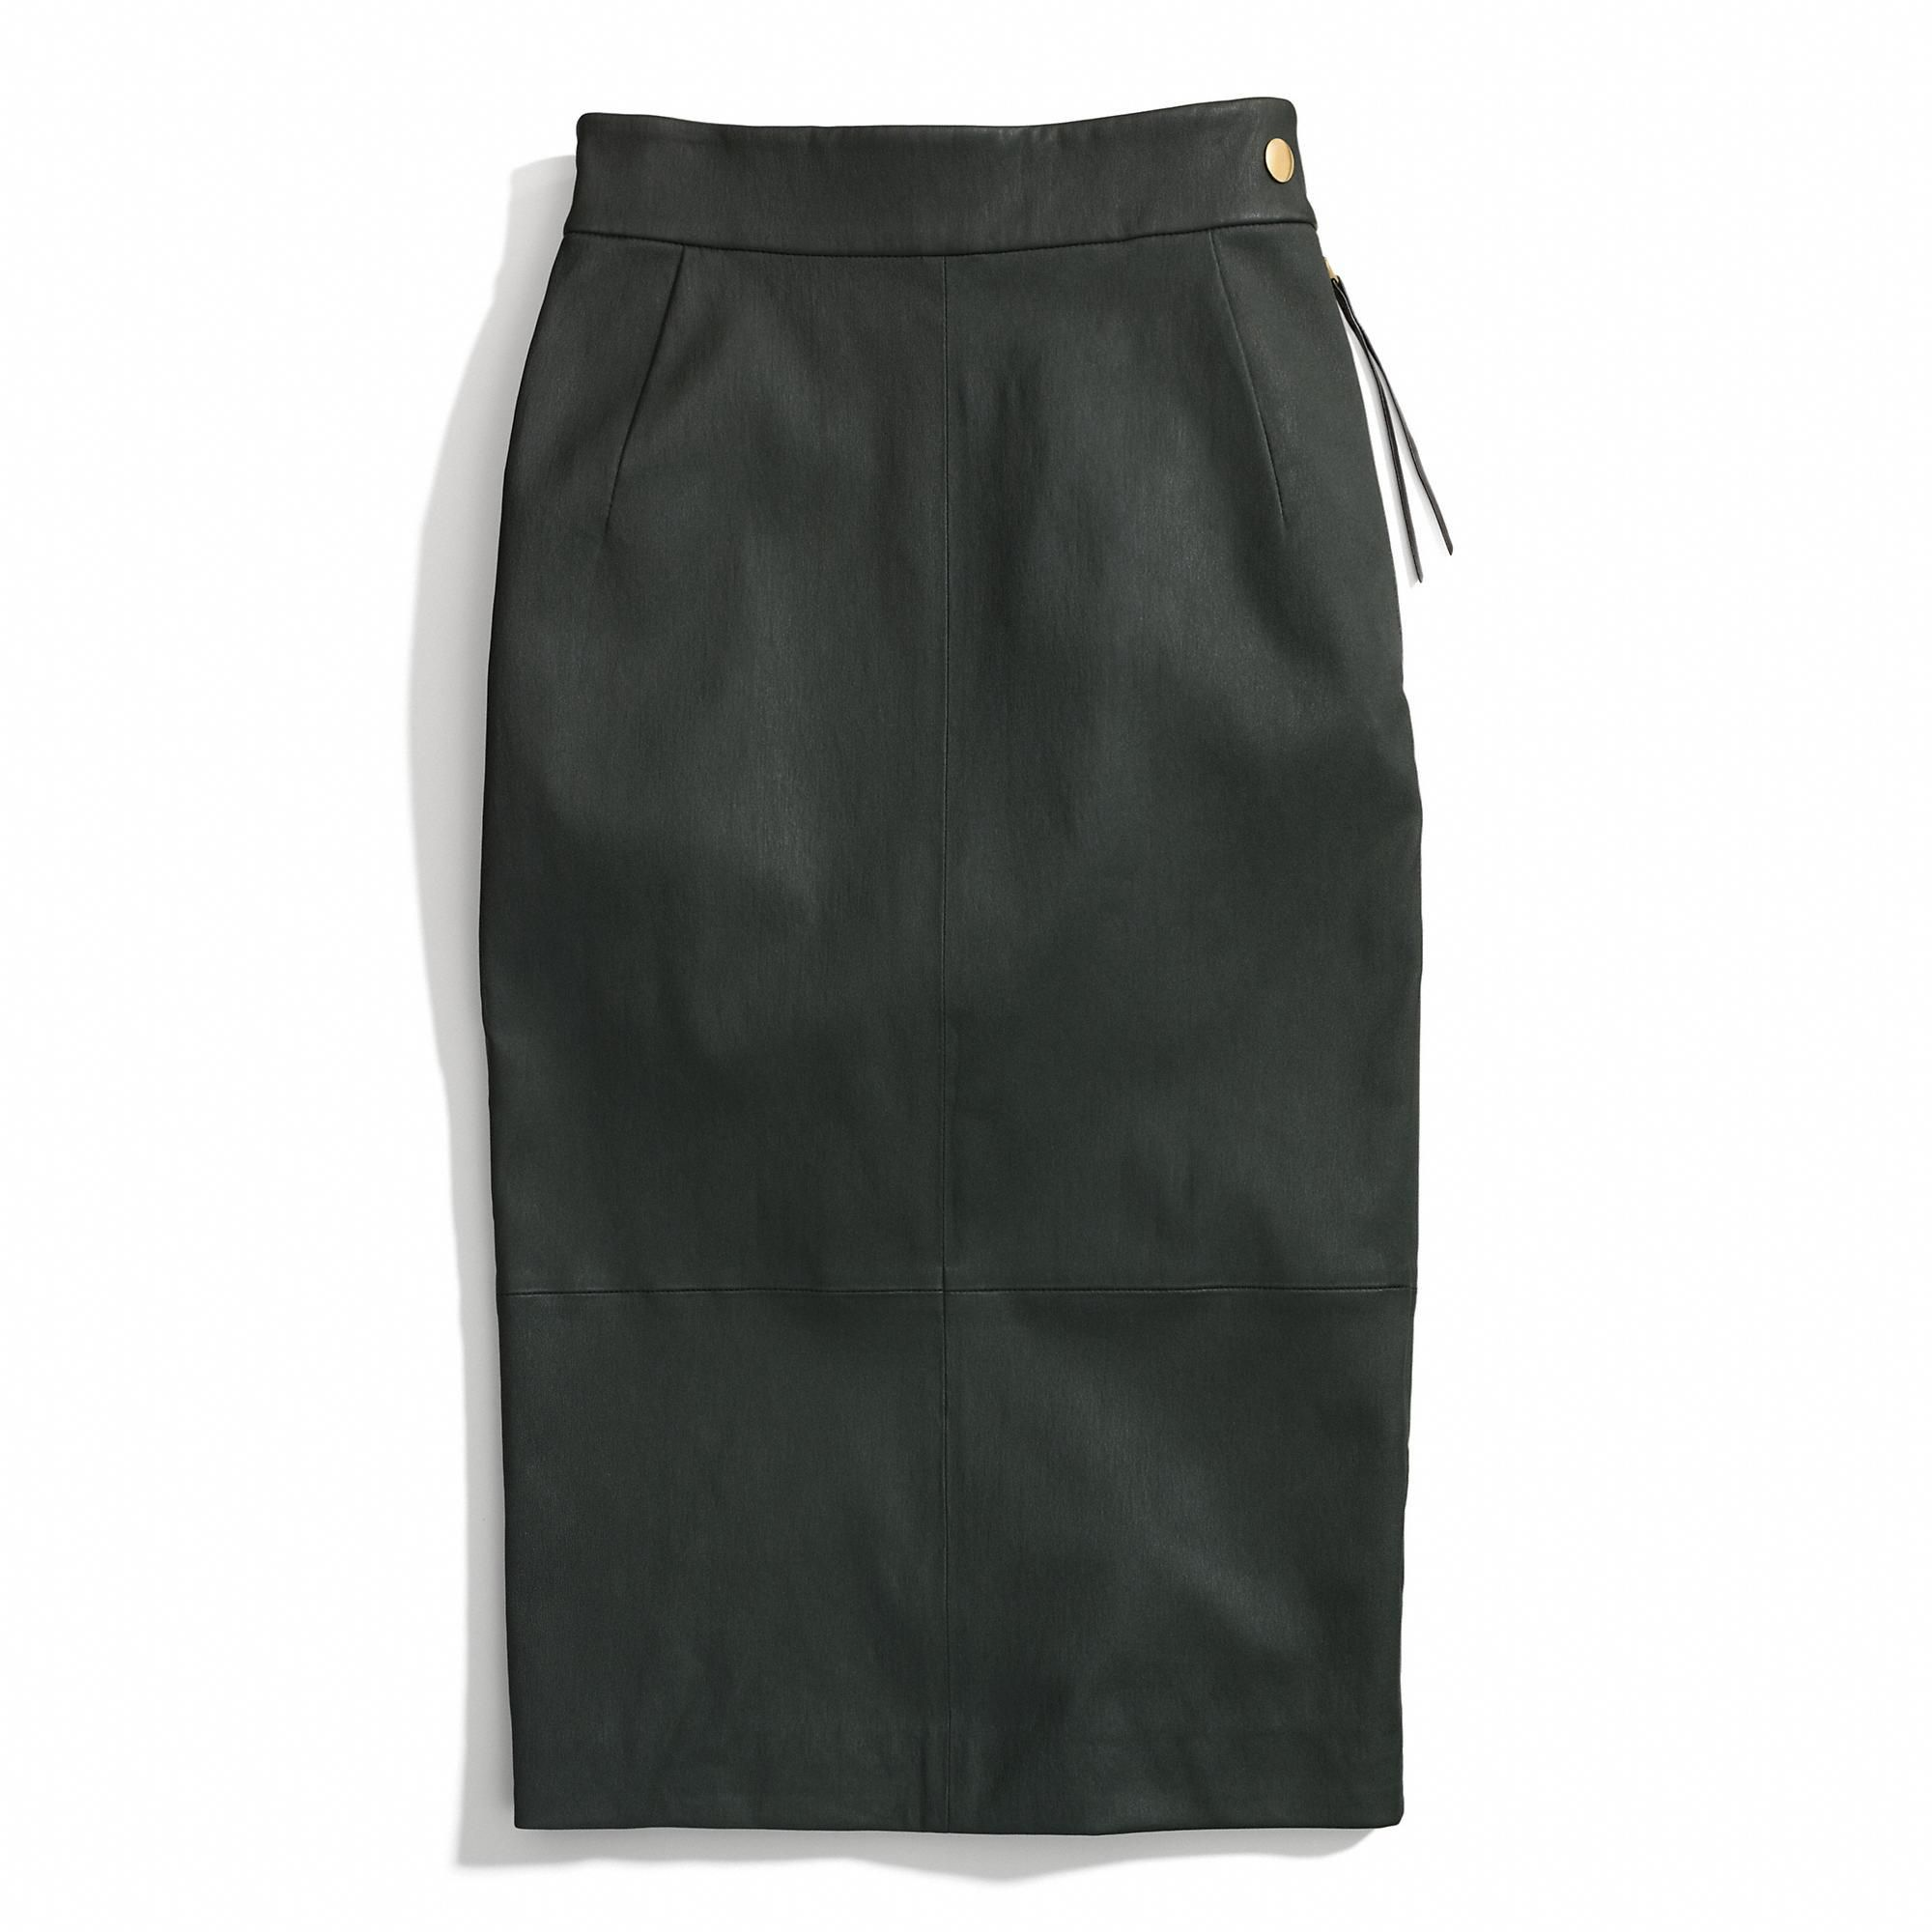 The Leather Sexy Skirt from Coach